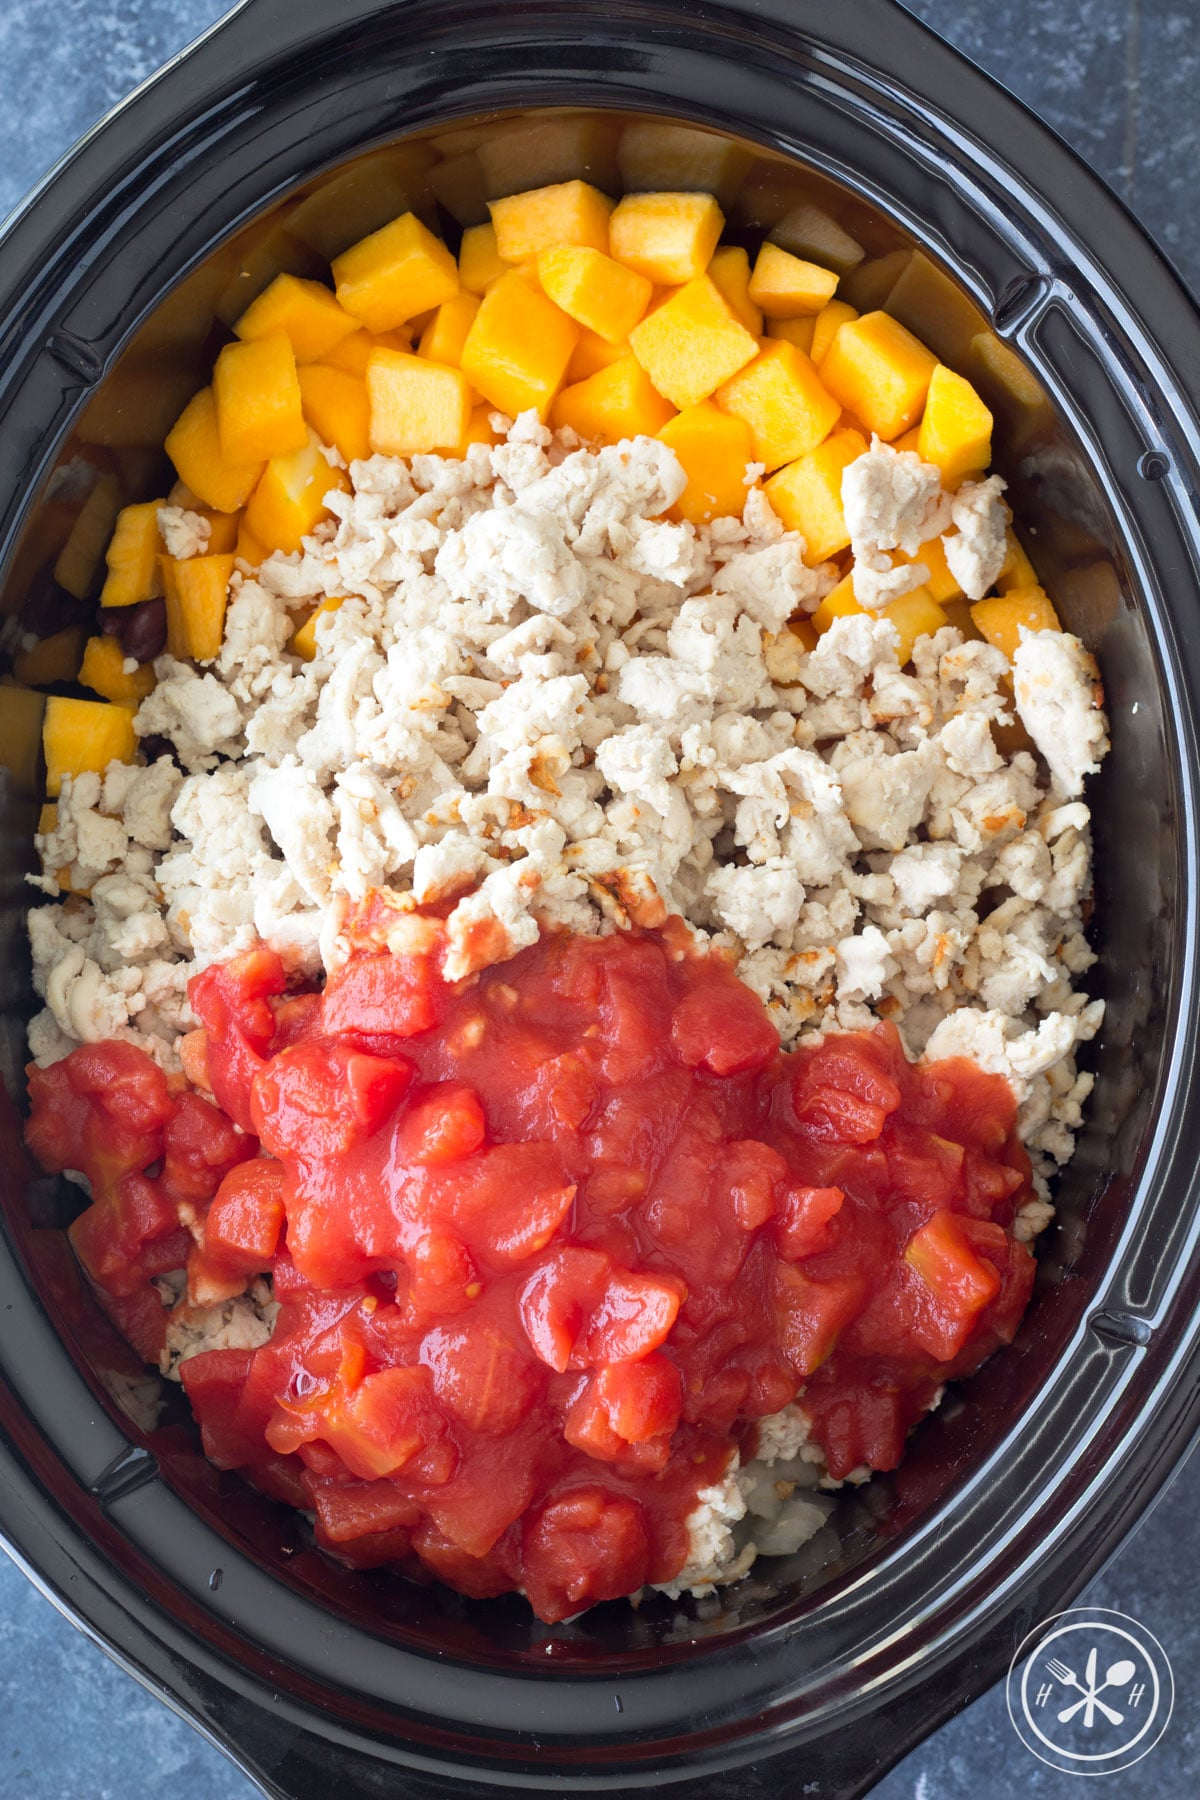 Slow cooker with chili ingredients added to it. Turkey, butternut squash, and tomatoes